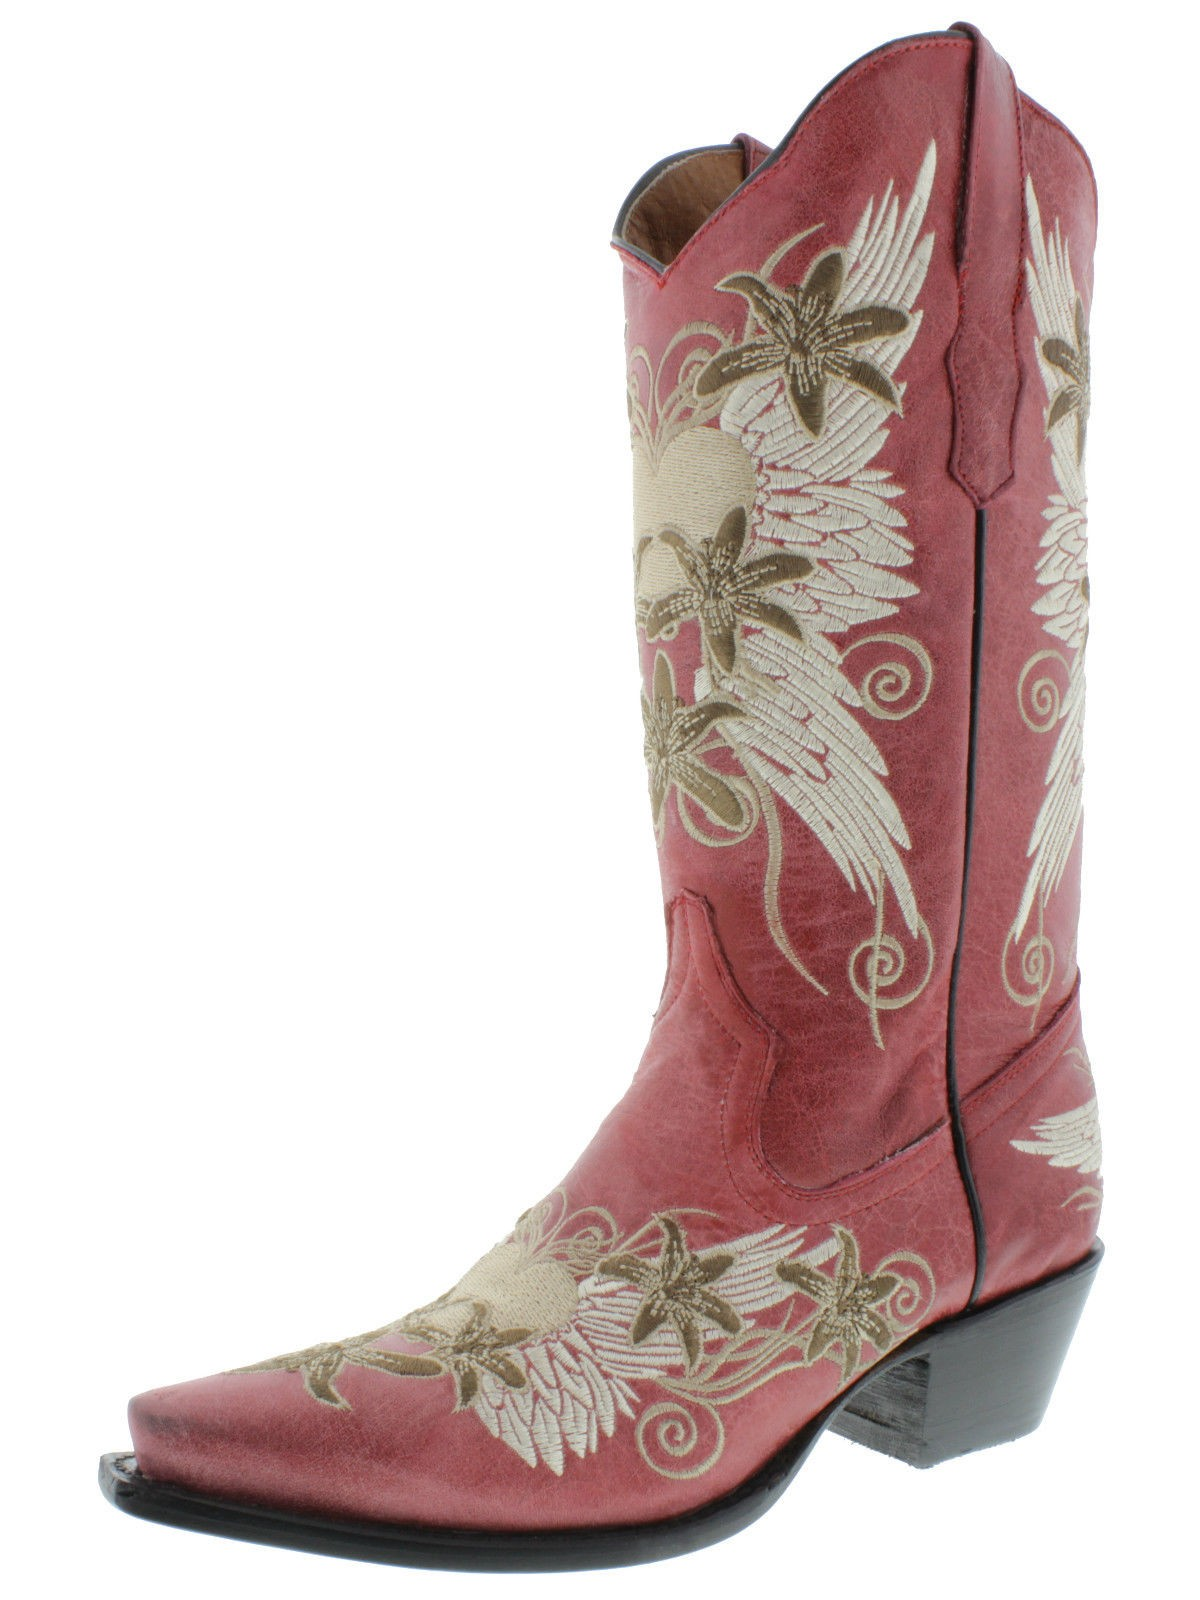 Womens Red Cowboy Boots wzBChb3I